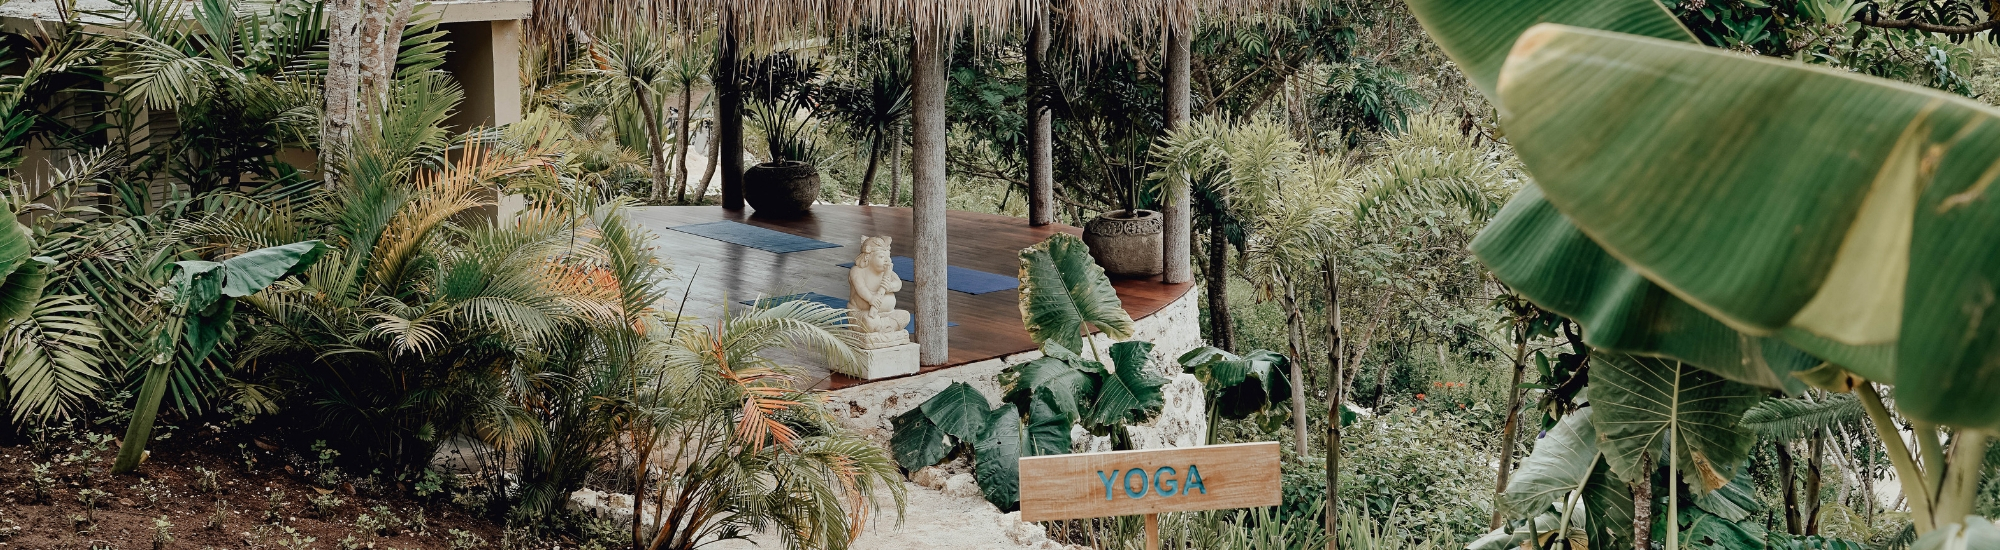 Yoga | The Mesare Resort, Nusa Penida, Bali